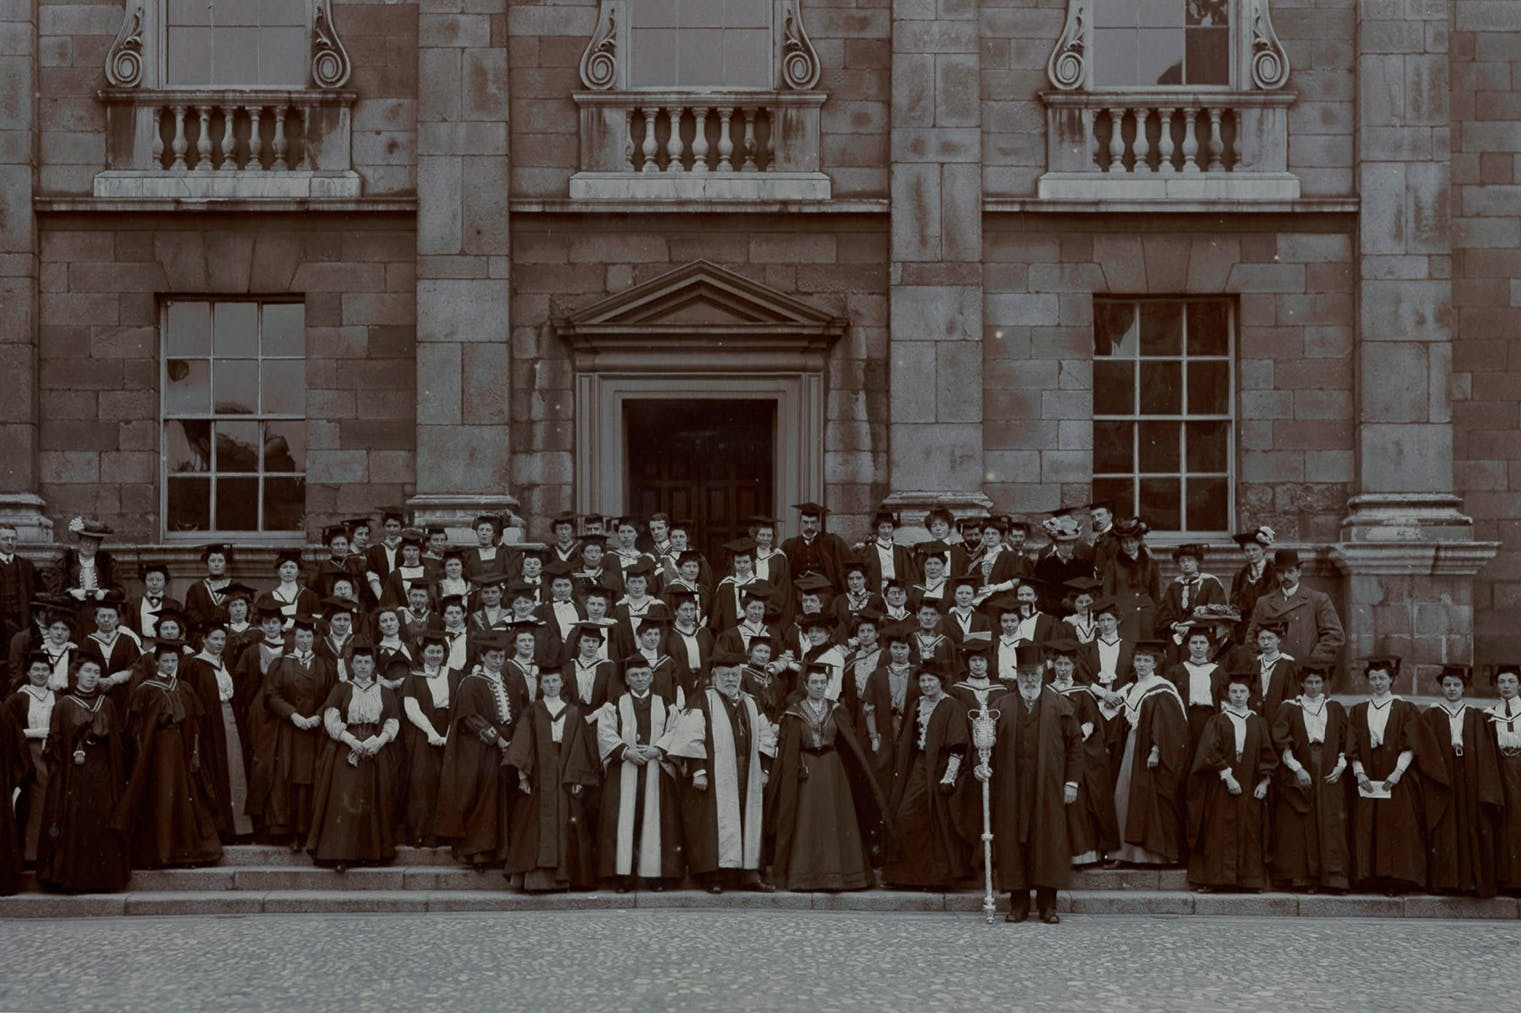 Photograph from 1904/06 of 'Steamboat ladies' – women students from Cambridge who were awarded degrees by Trinity College Dublin in the 1900s. Girton College, Cambridge